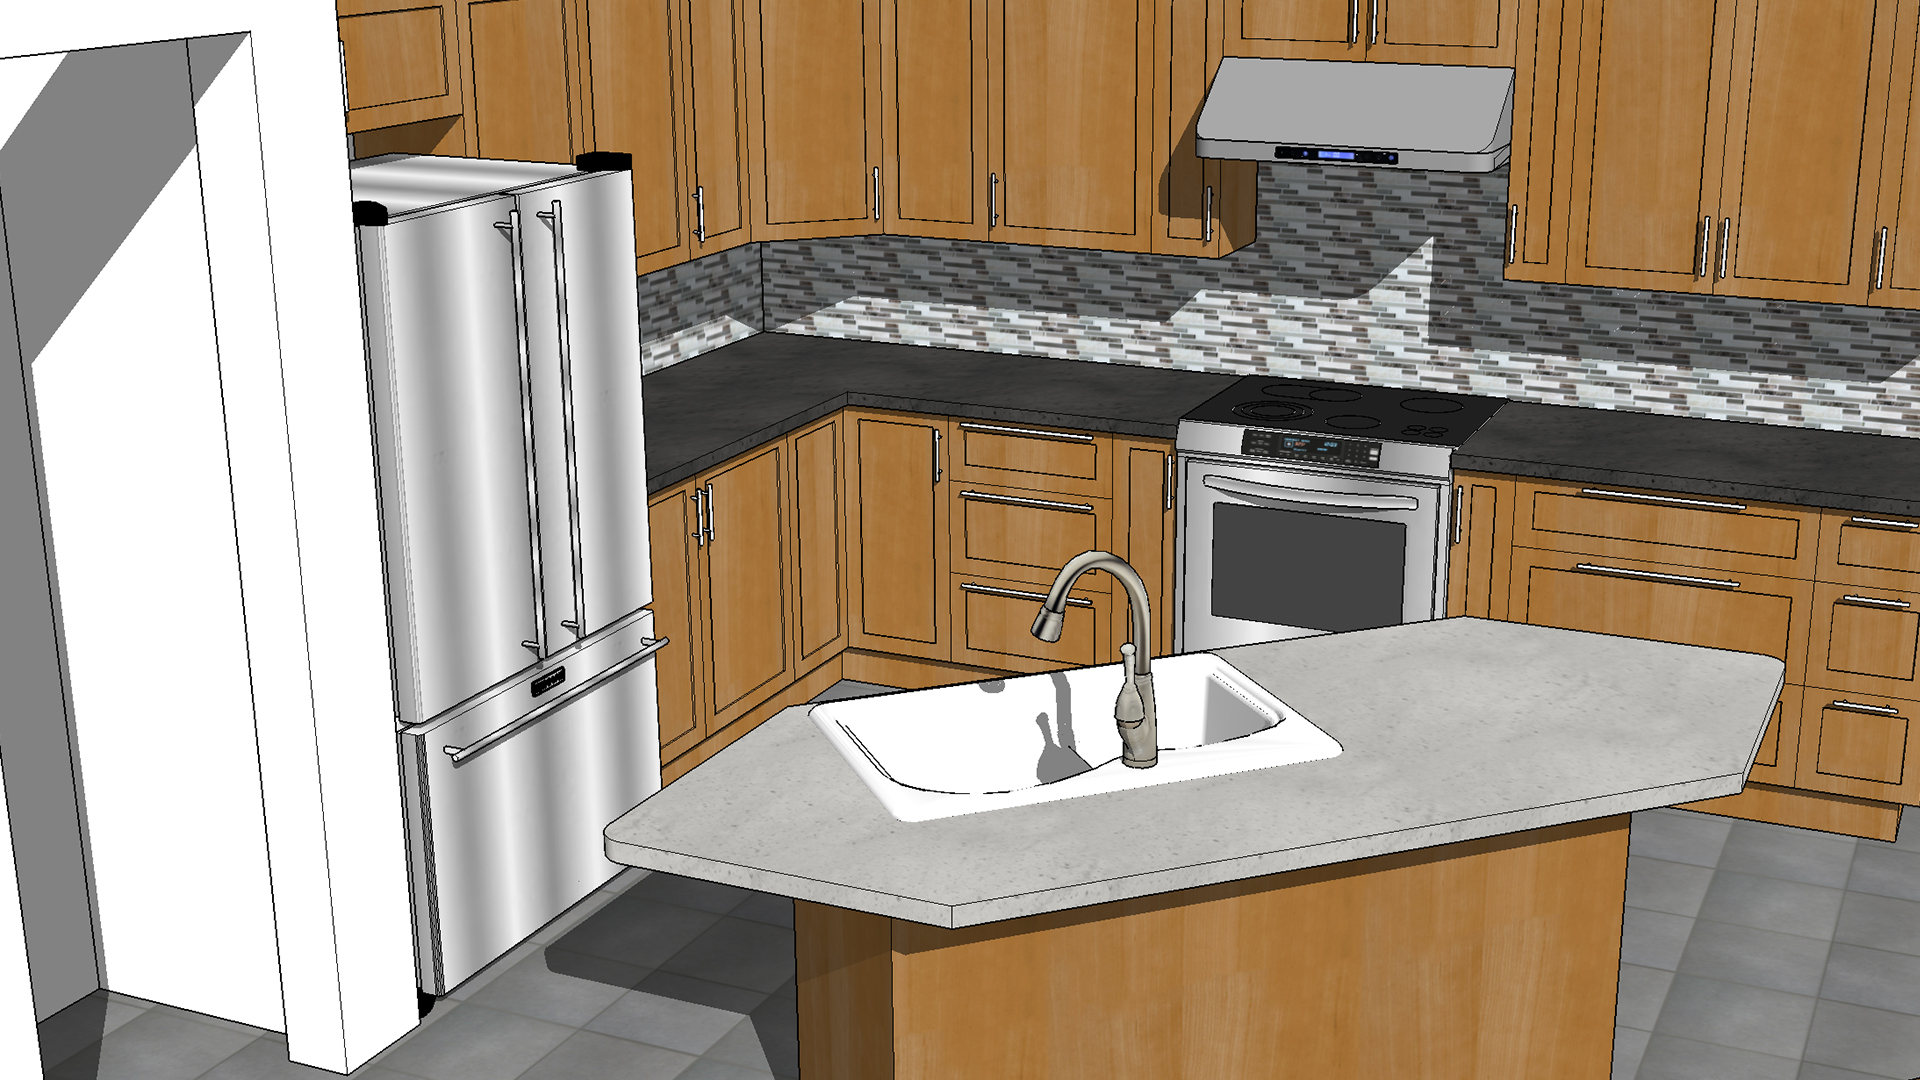 kitchen design sketchup sketchup kitchen design 729